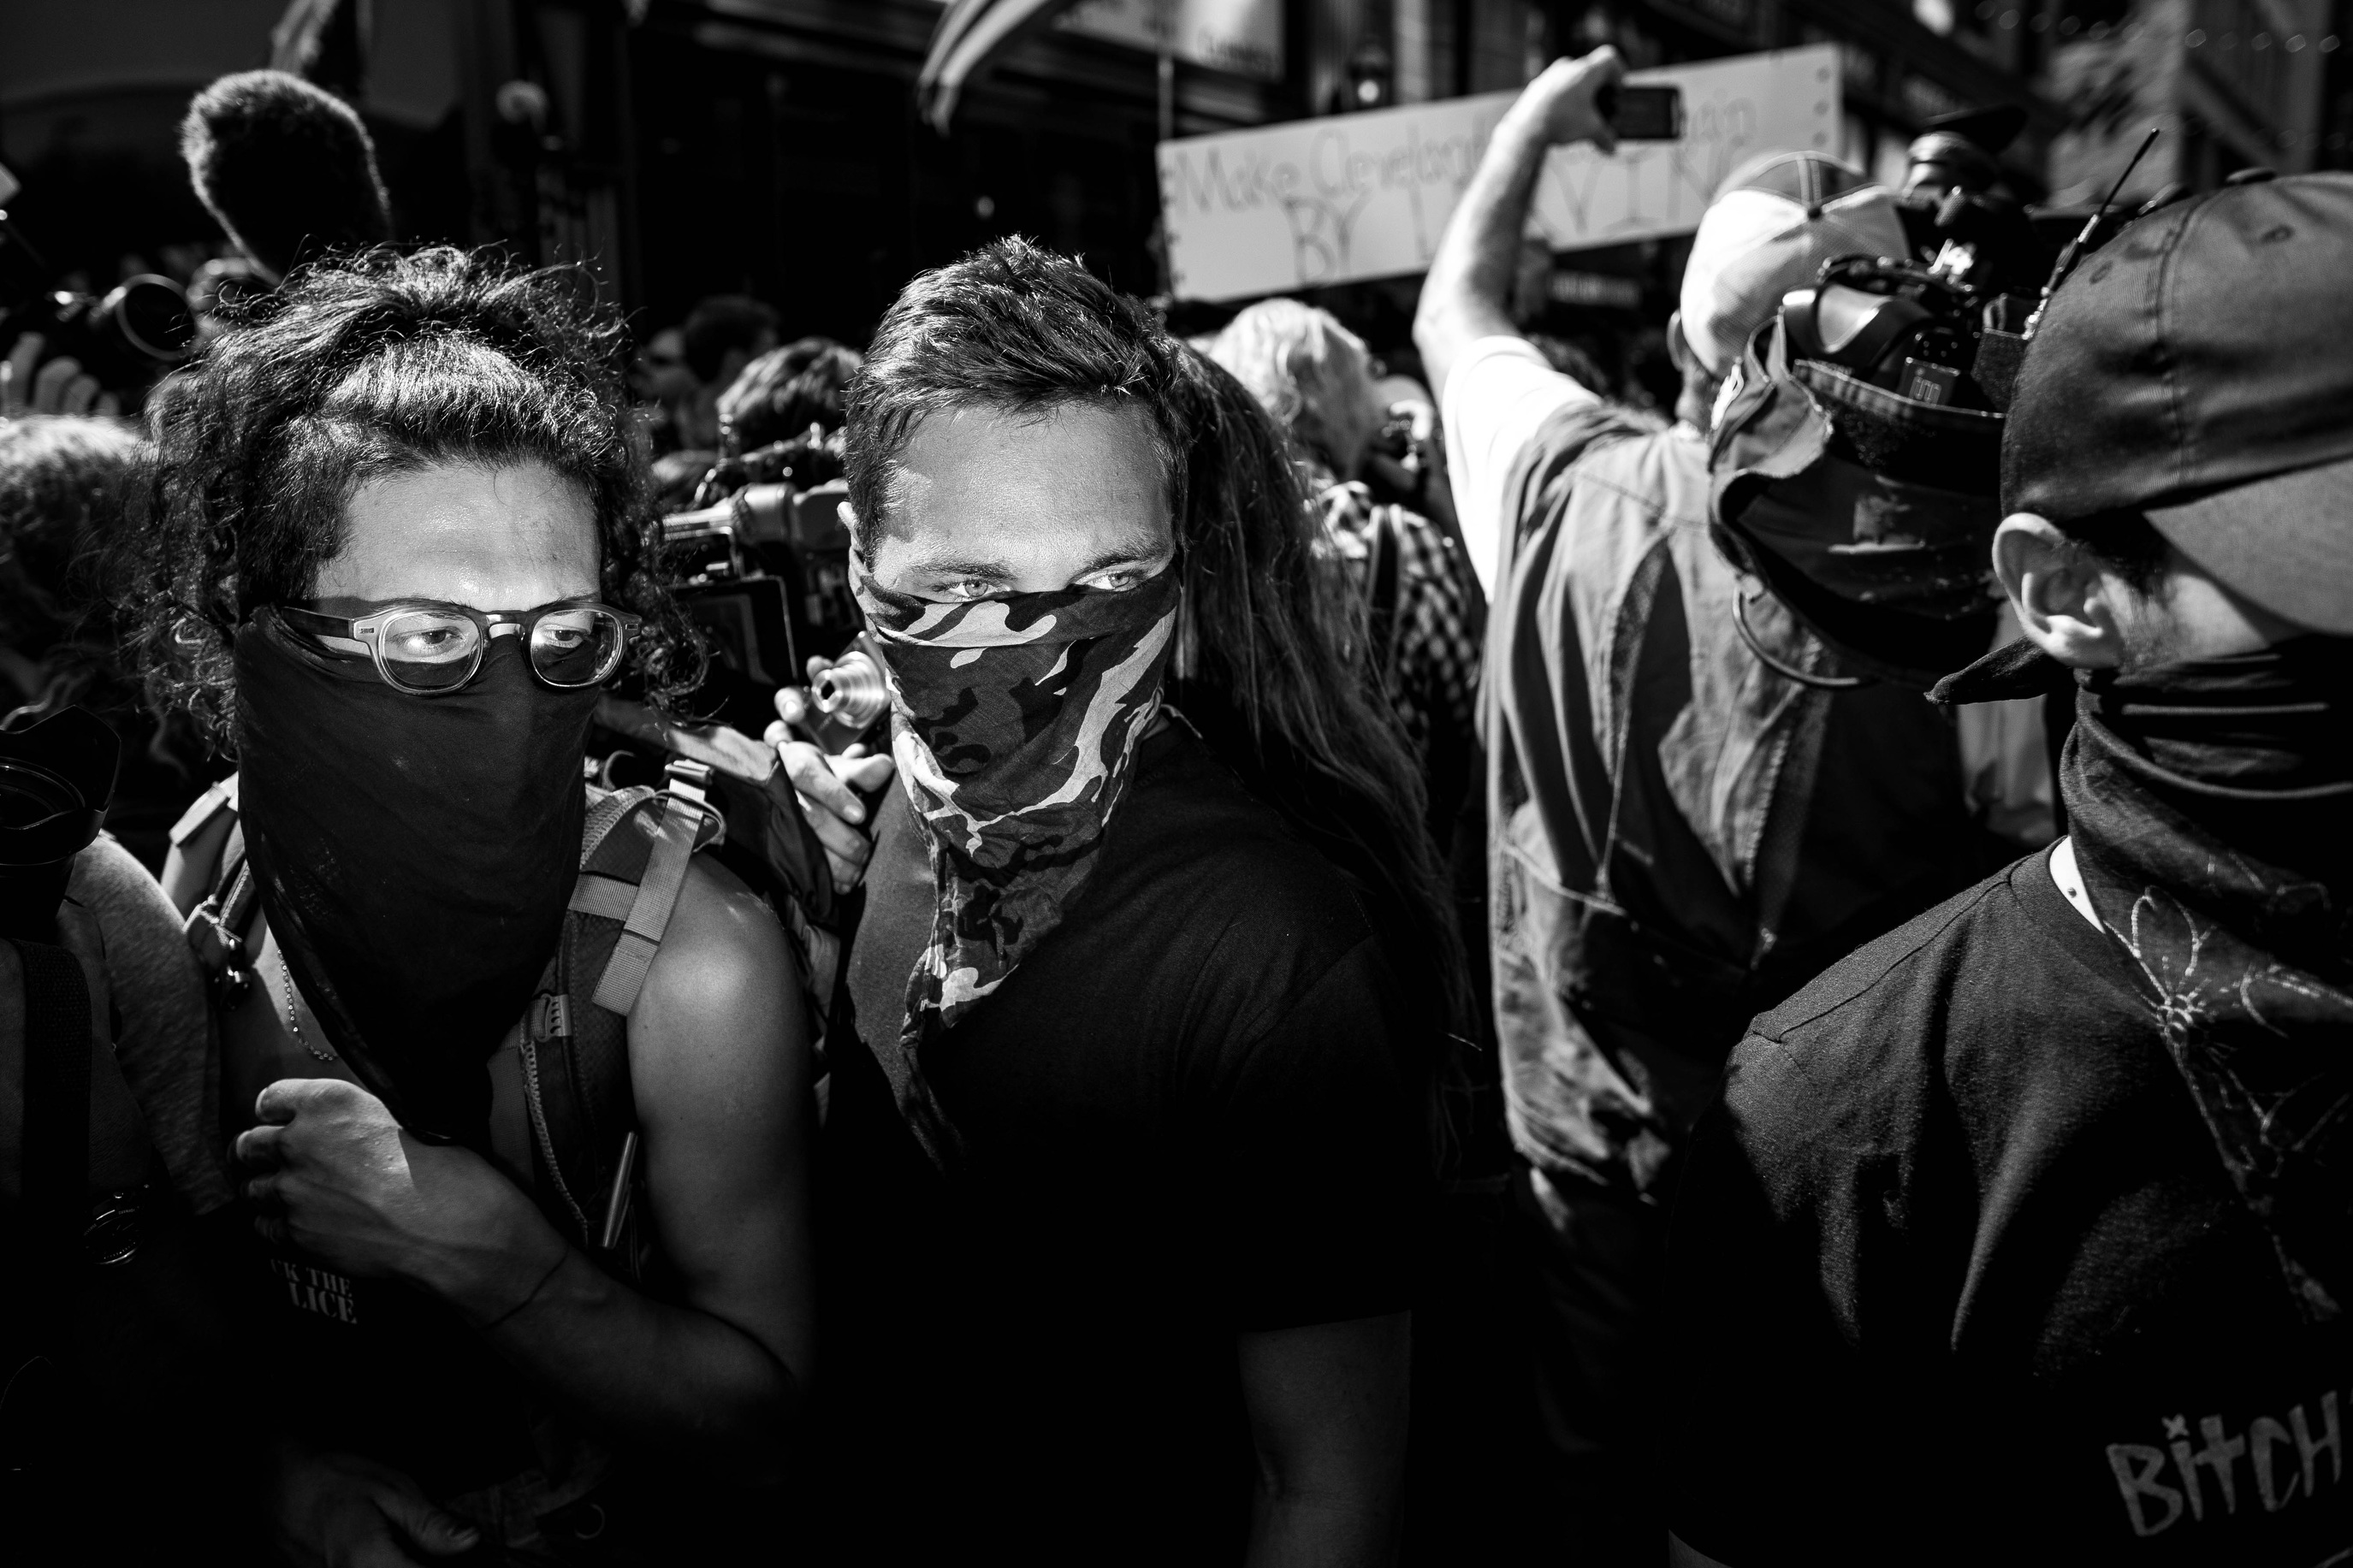 Protesters, identifying themselves as anarchists, gather amid media and police during a demonstration near the Republican National Convention July 20, 2016 in Cleveland, Ohio.